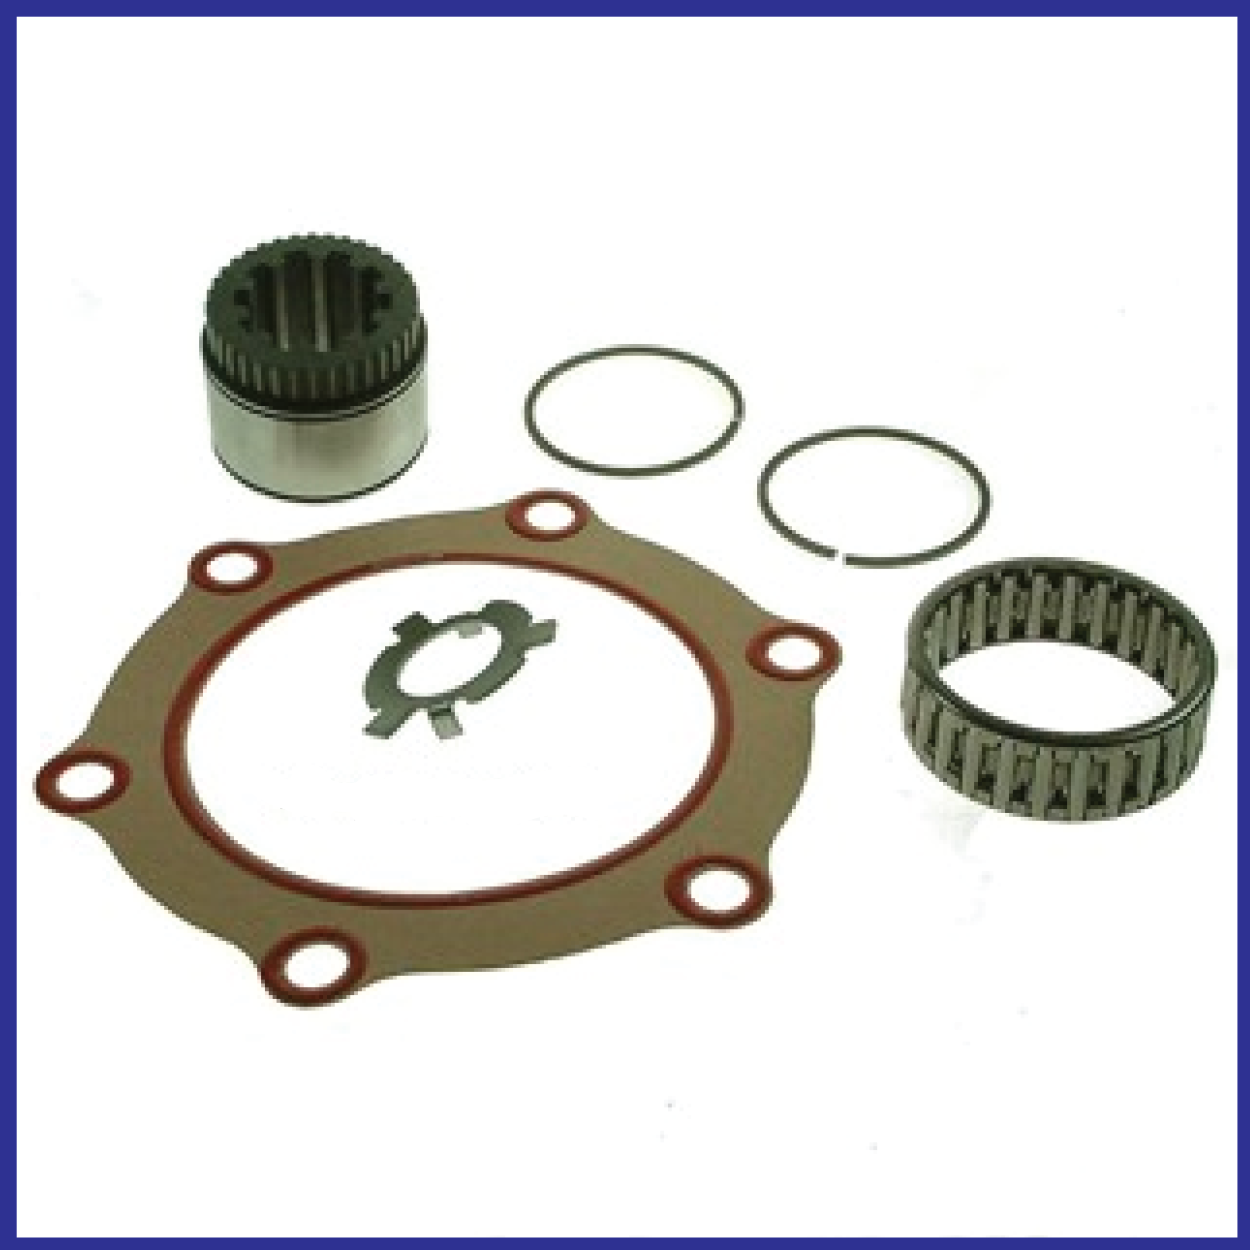 Coupling Sleeve Overhaul Kit Fairey Overdrive Online Gearbox Parts Land Rover